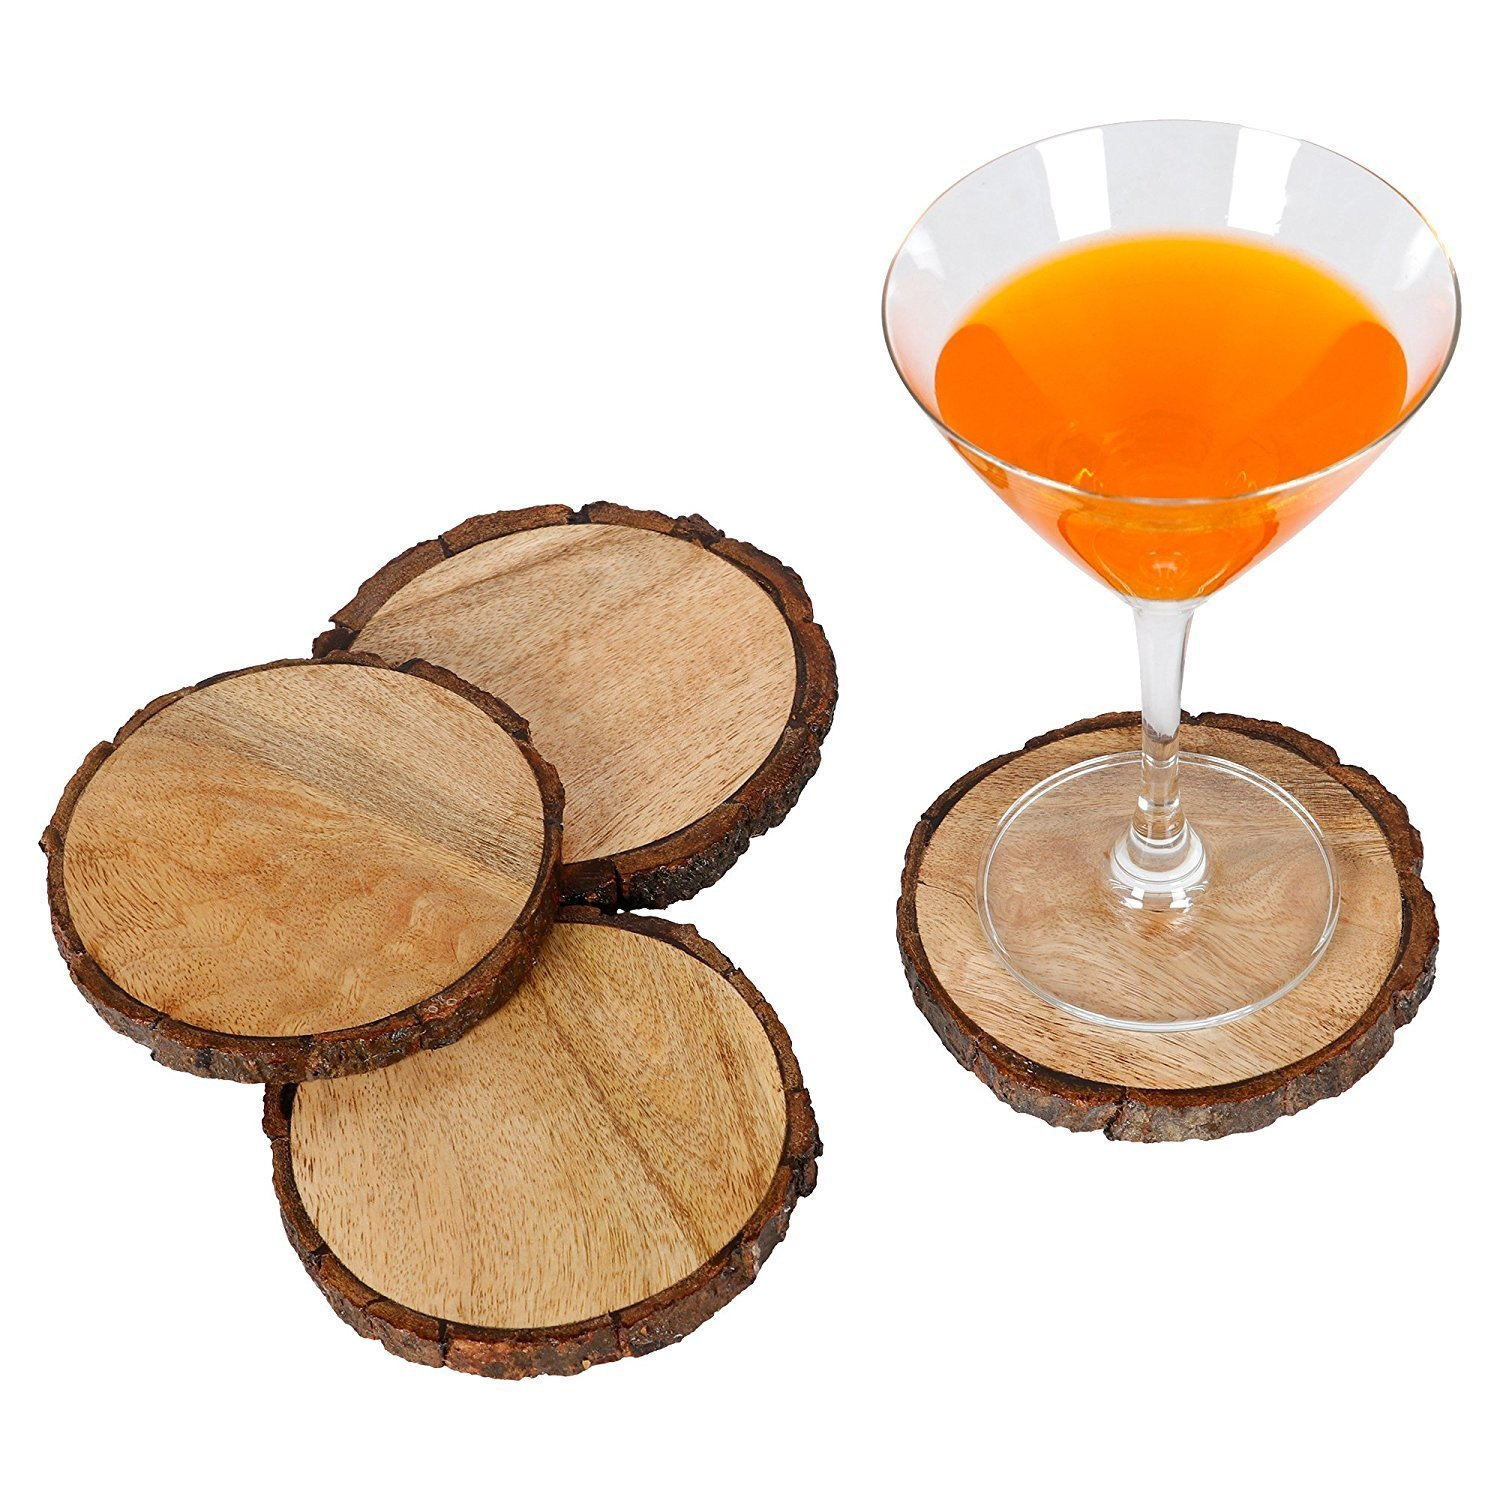 Luxurious Wood Coasters (set of 4) , Light Weight and fitted in natural Bark tree Wood o , Coaster for Drinks, Hot/Cold ,Coffee Mugs, Beer Cans ,Bar Glasses 4 x 4 inch